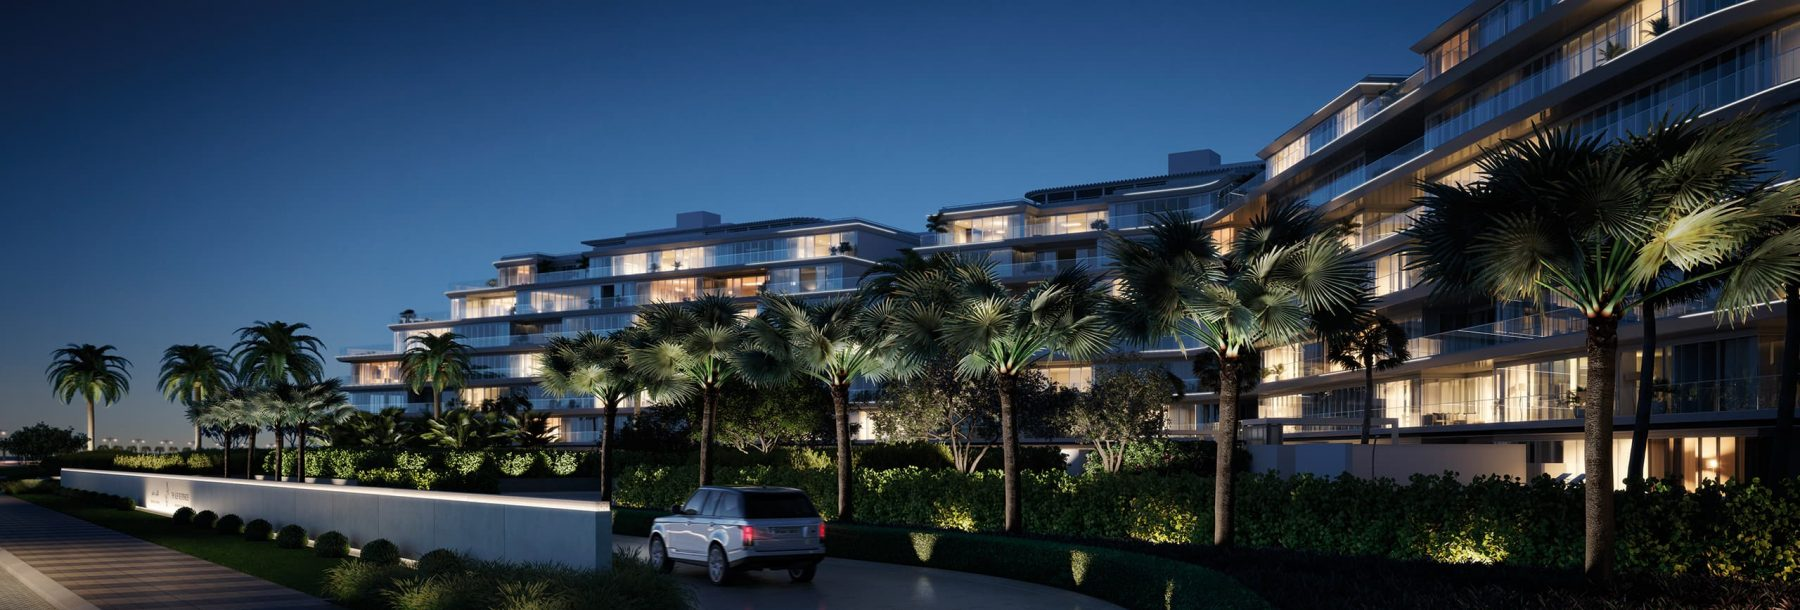 The W Residences luxury apartment complex at night